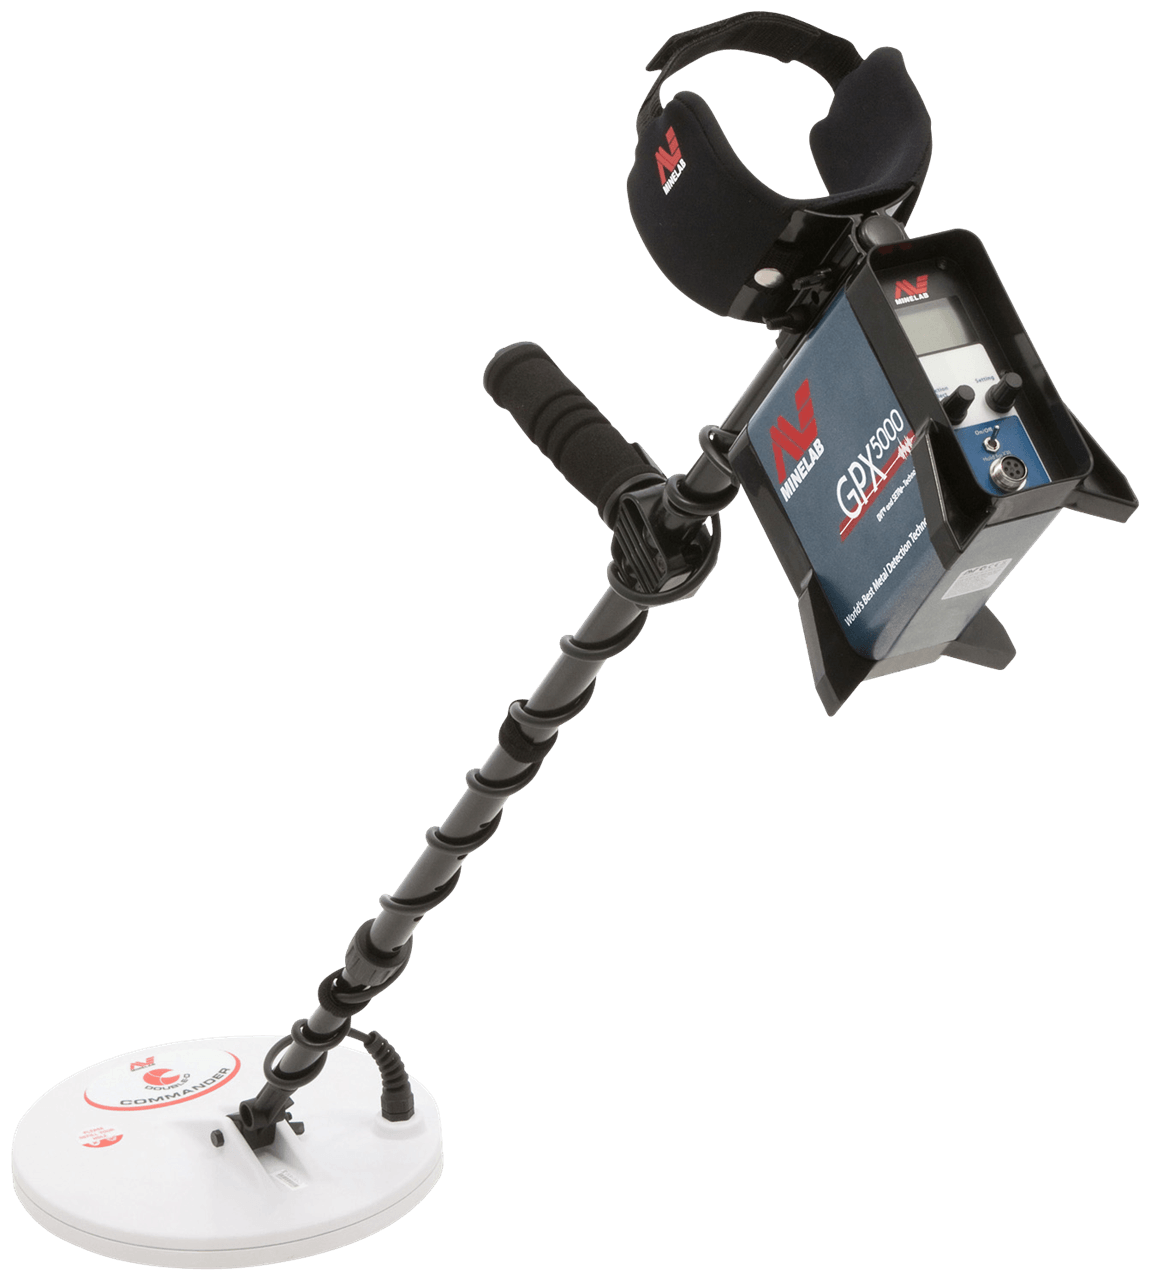 METAL DETECTOR - HIGH PENETRATION for Rent - Kennards Hire